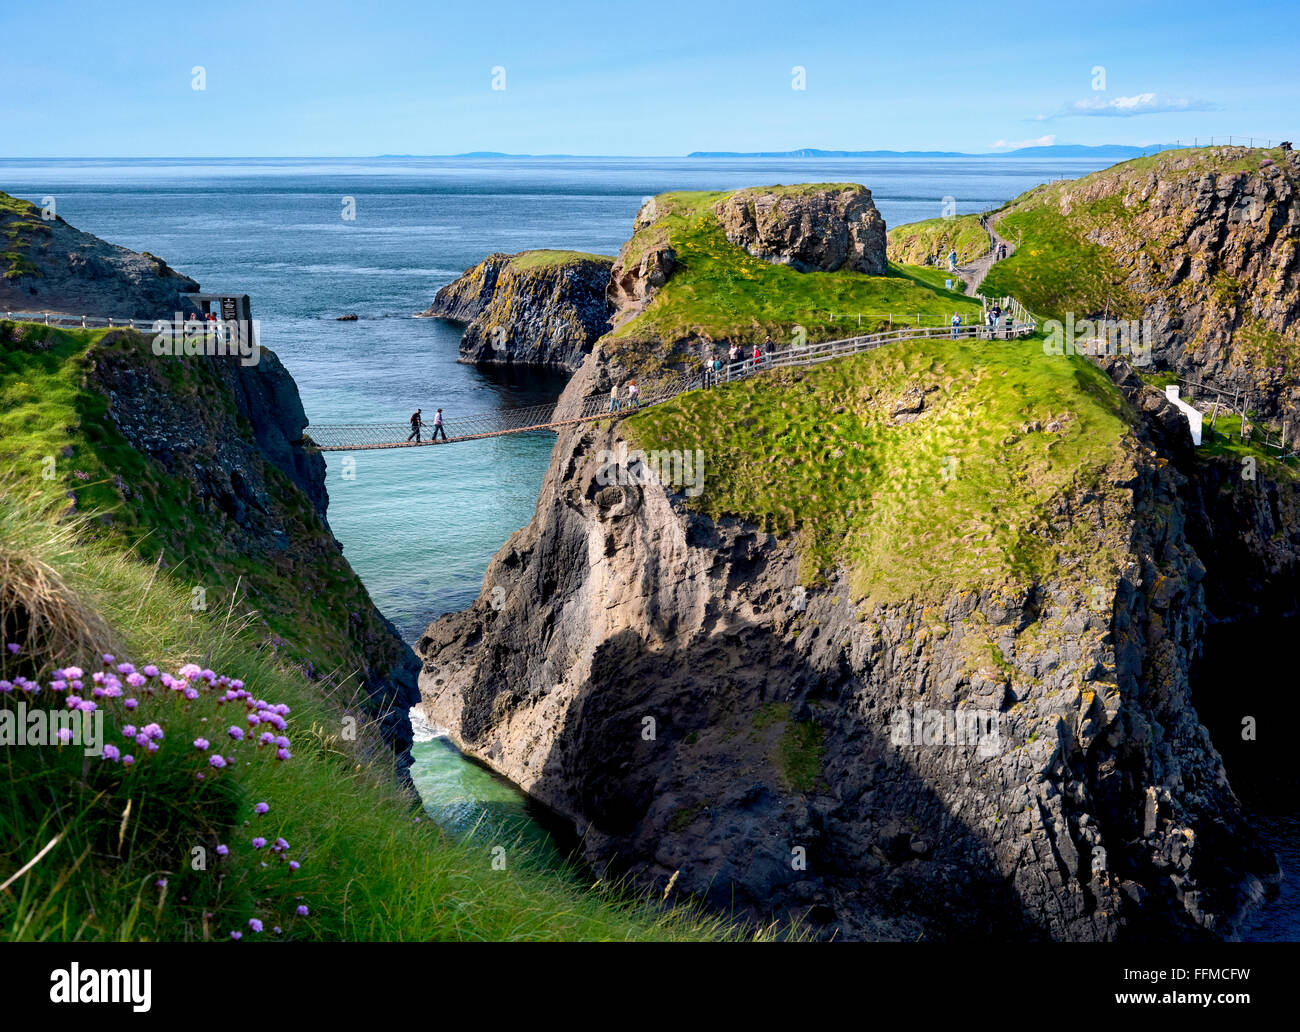 Carrick-a-rede Co Antrim Northern Ireland - Stock Image